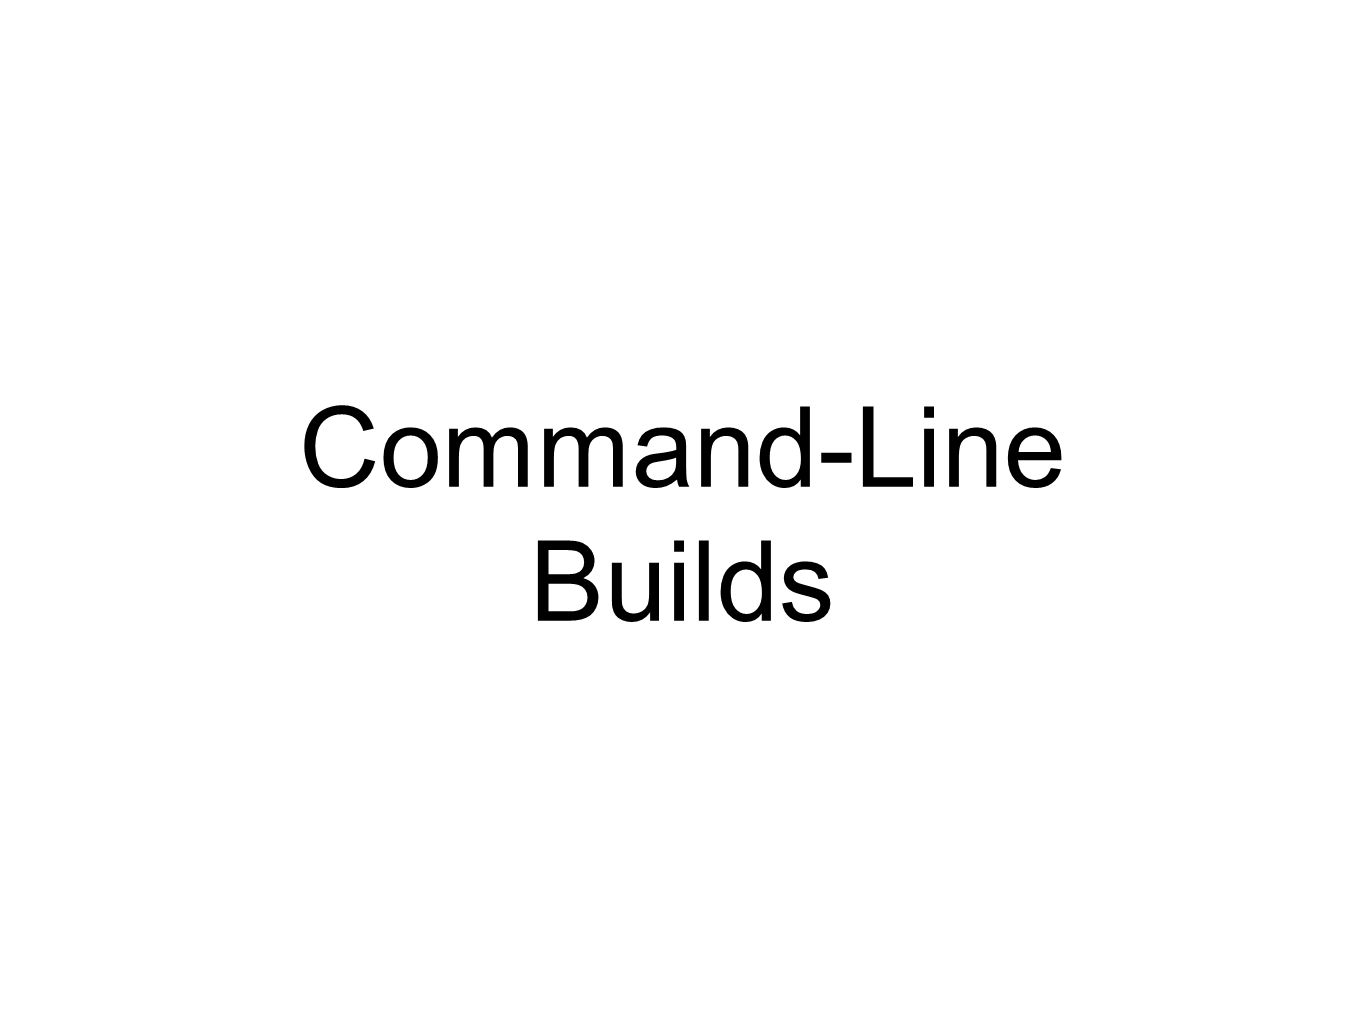 Command-Line Builds